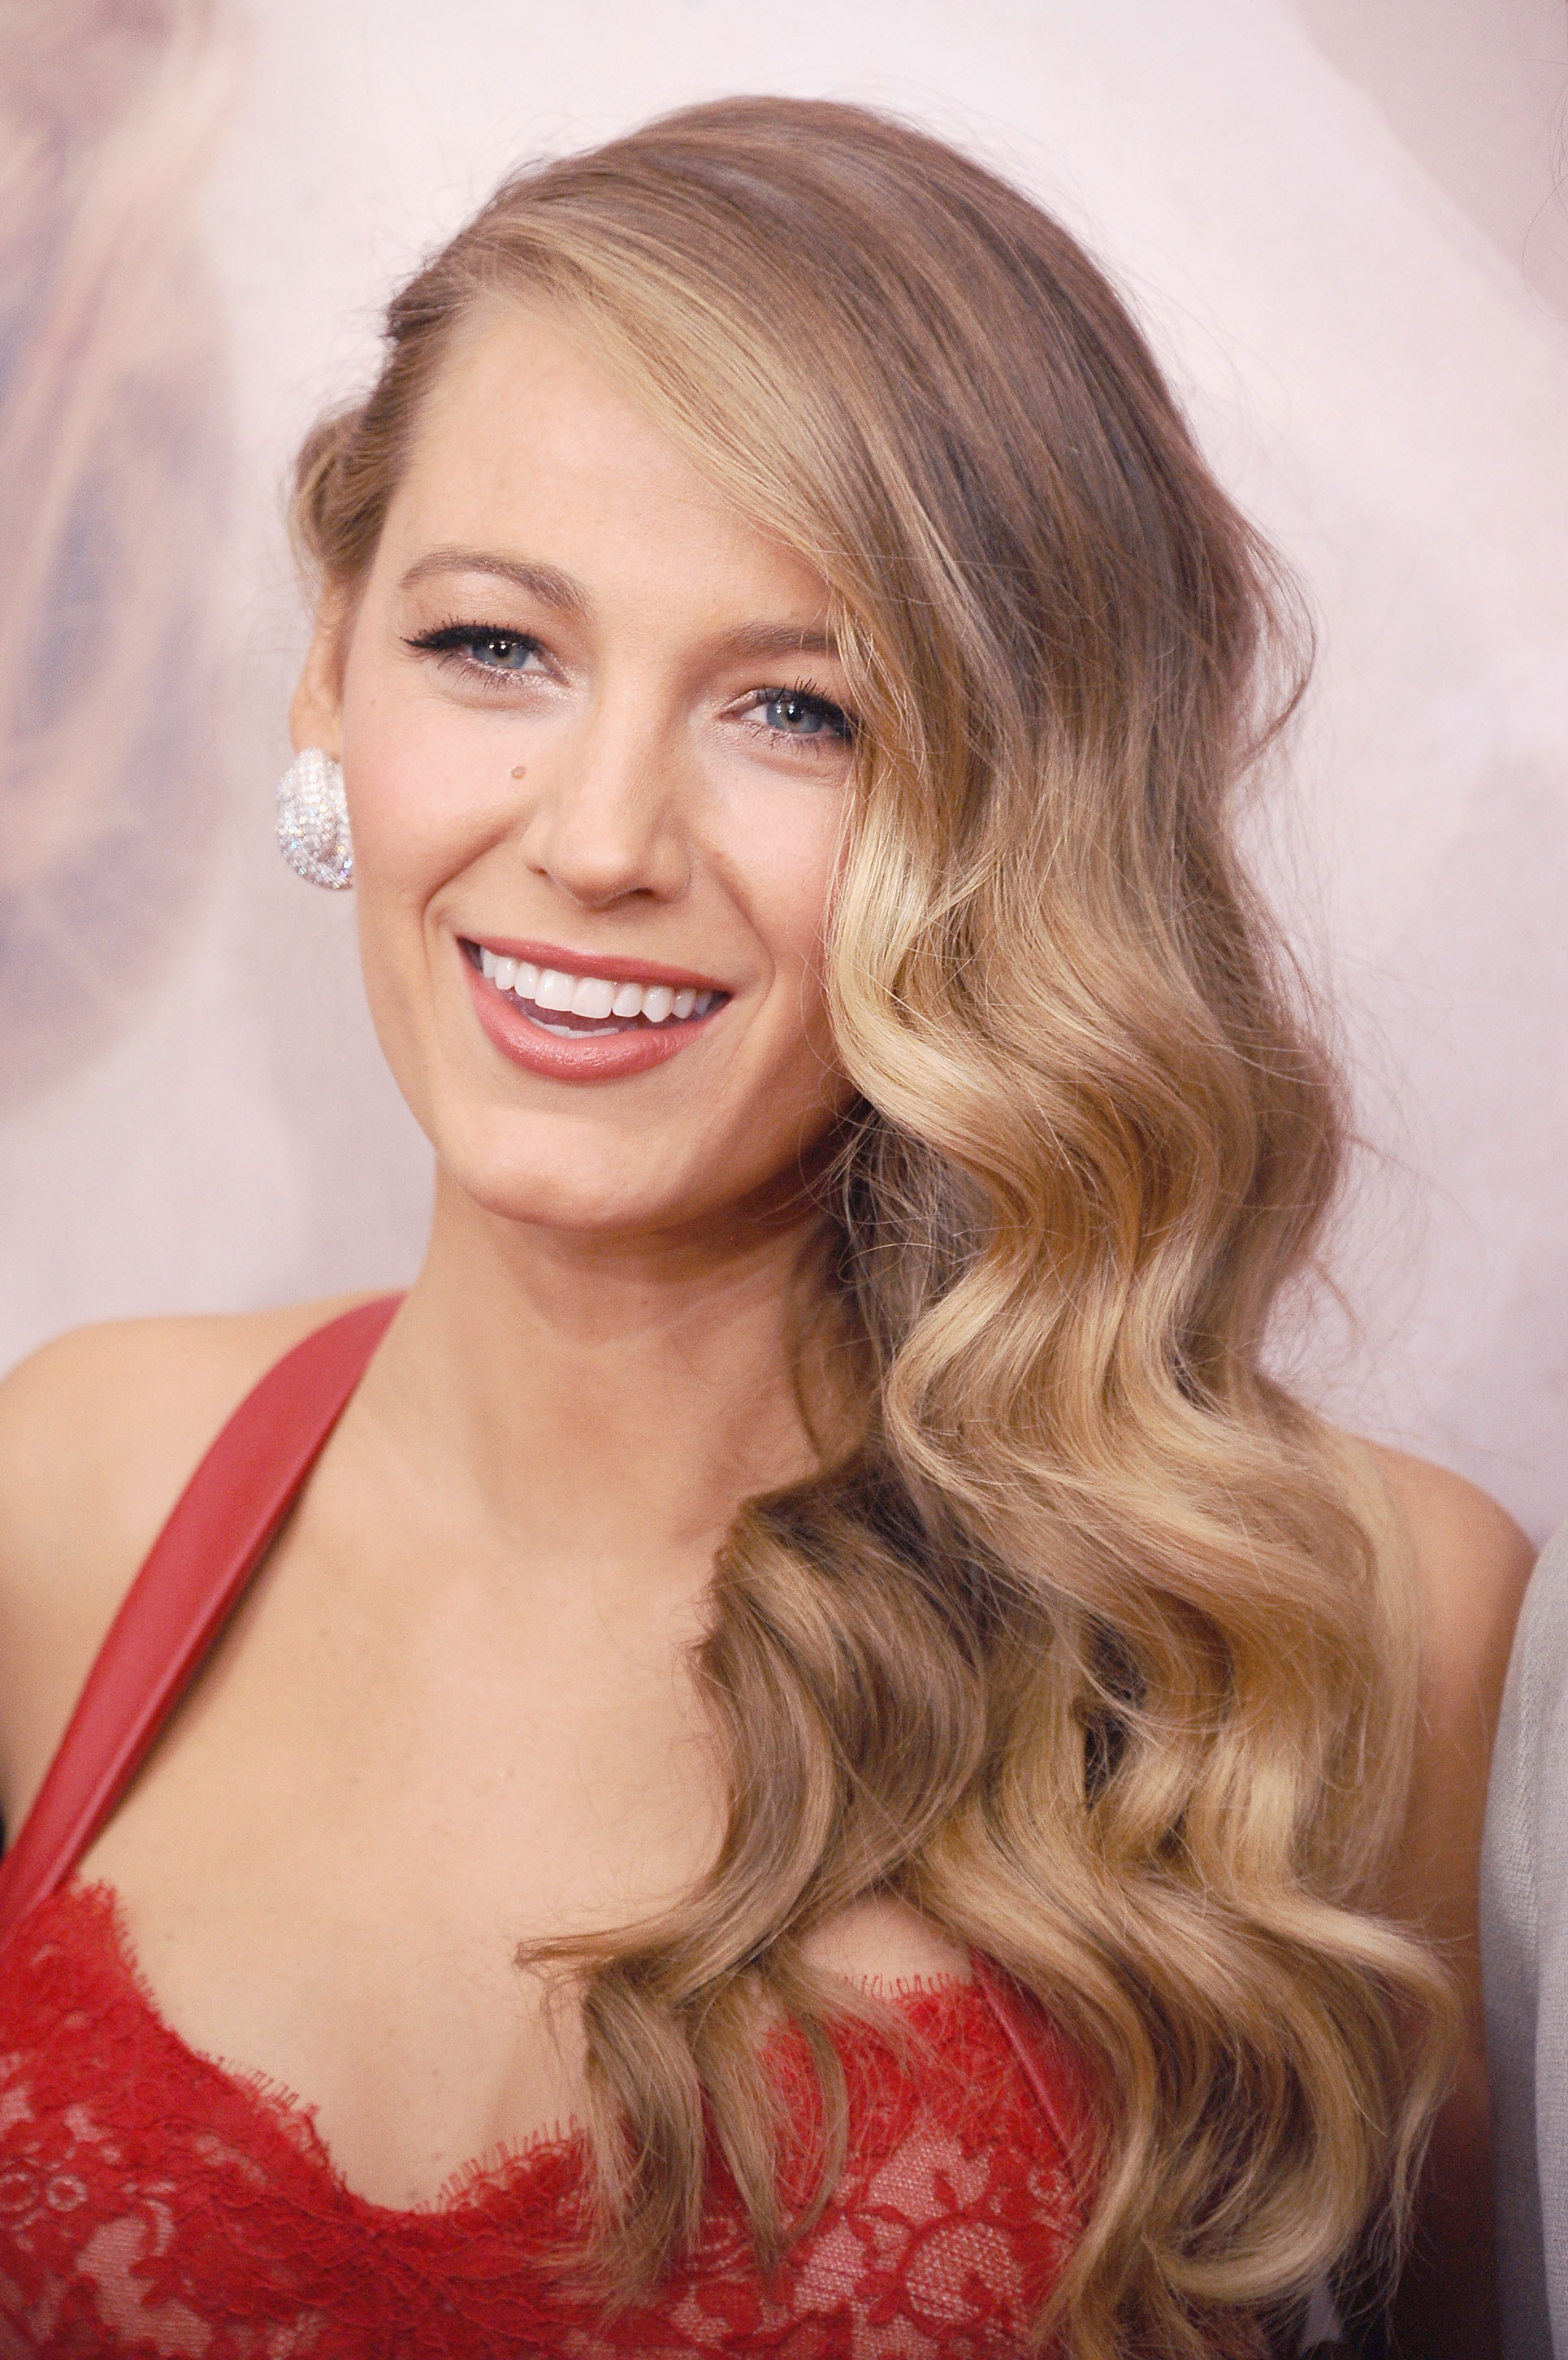 27 Brilliant Ways To Advertise Blake Lively Hairstyles